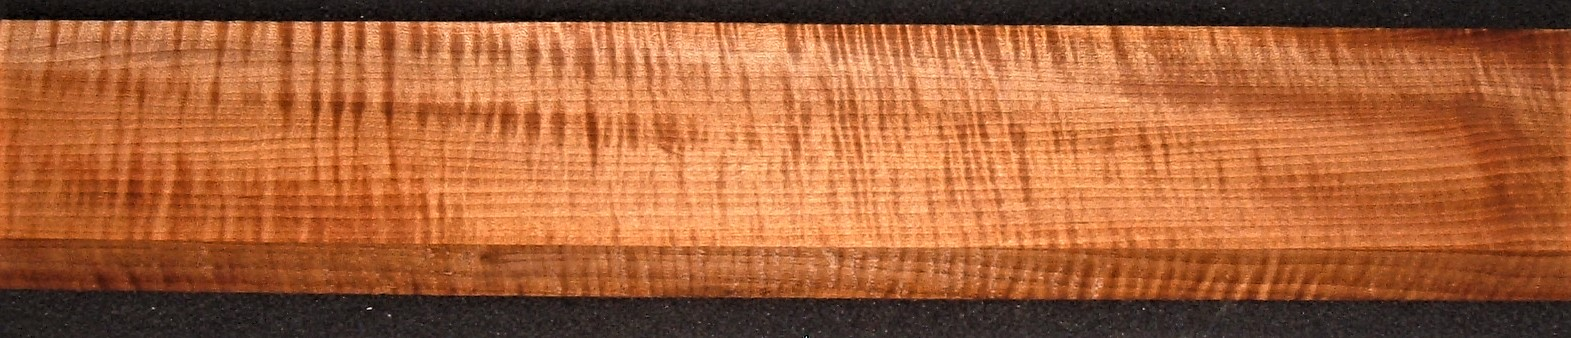 QRM2009-241JK, 1-1/16x3-3/4x45, Roasted Torrefied, Curly Tiger Quartersawn Maple